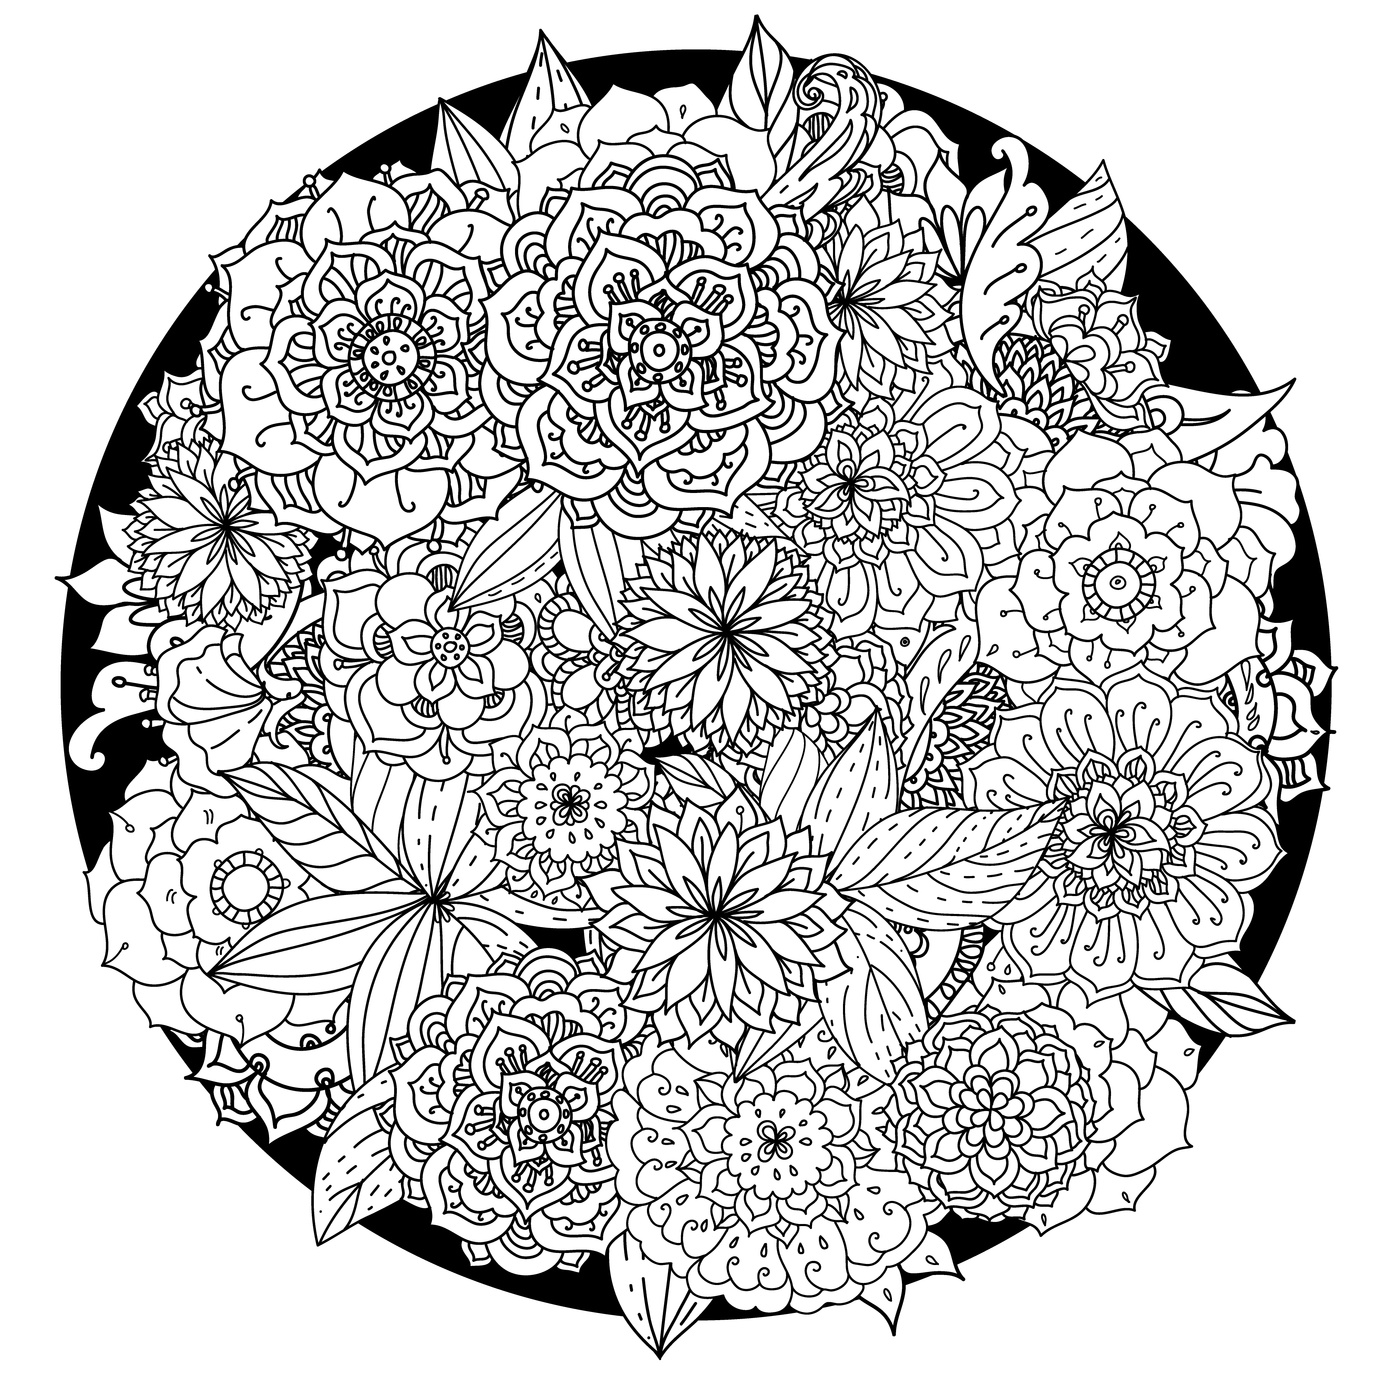 63 Adult Coloring Pages To Nourish Your Mental - Visual ...   free printable mandala coloring pages for adults easy